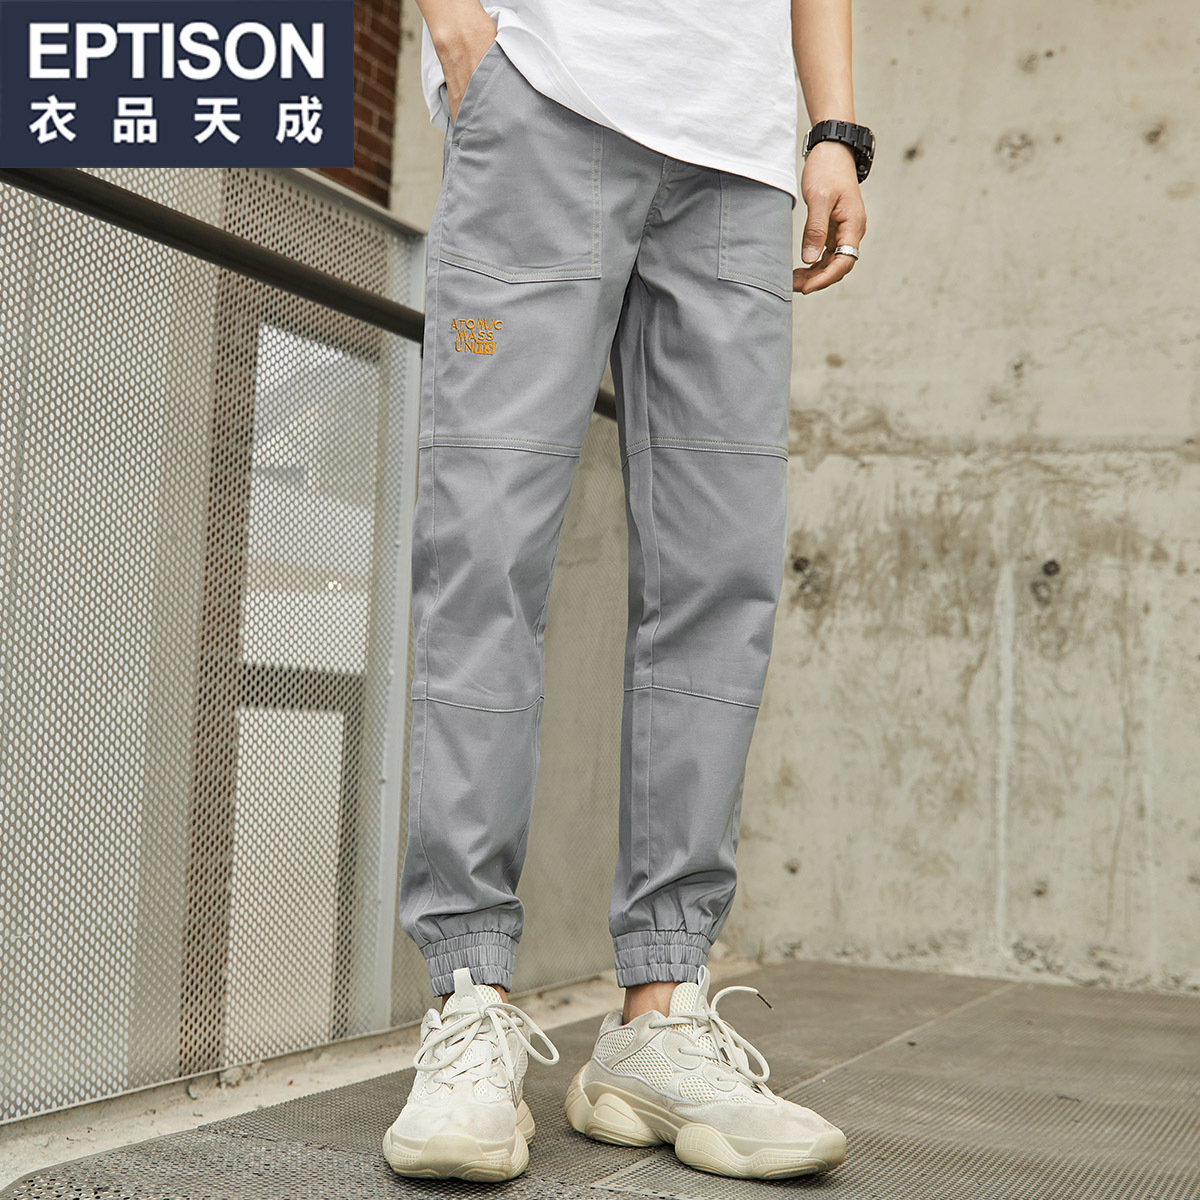 Clothing Tiancheng 2019 summer new men's casual pants trend Korean version of the straight feet loose youth long pants